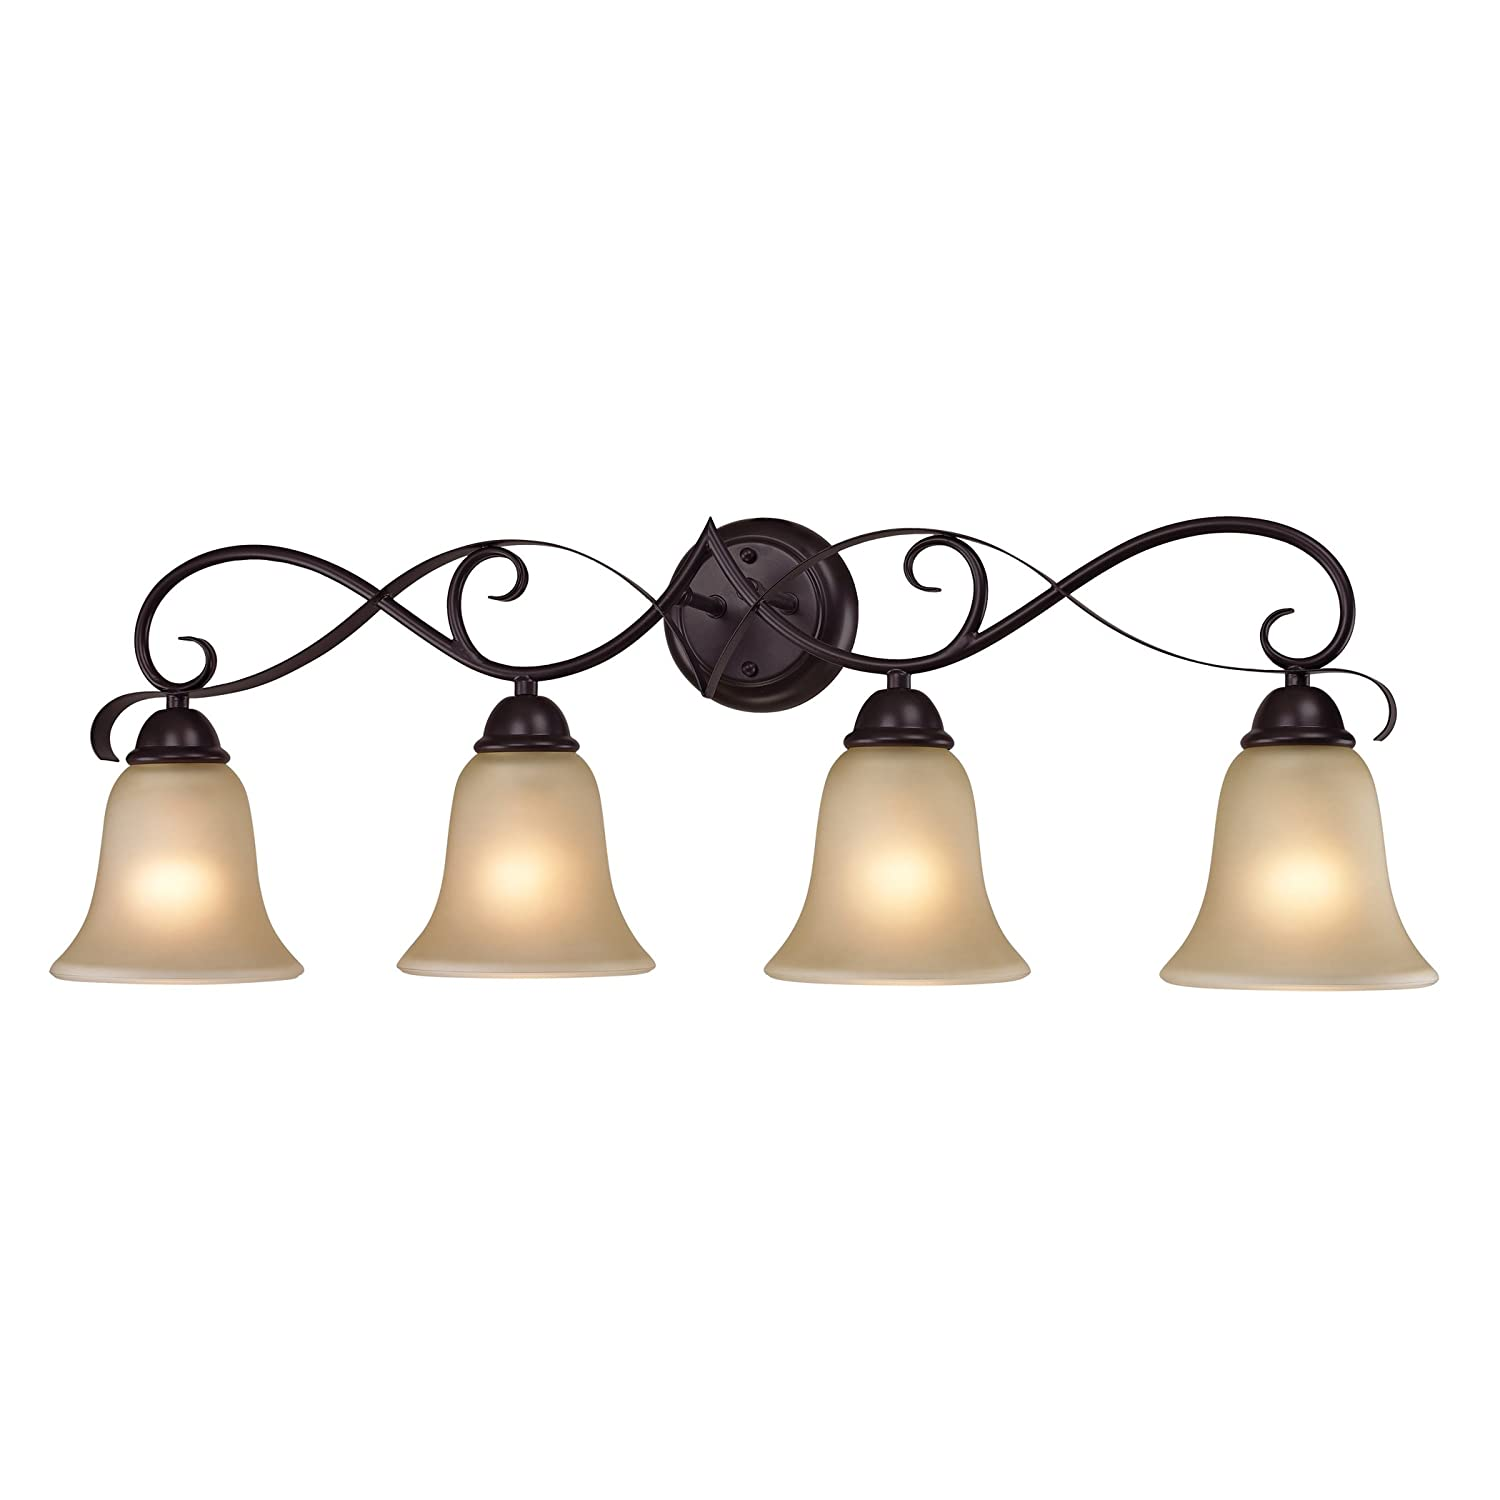 Bronze Bathroom Lights: Elk Lighting 1004BB/10 Brighton 4 Light Bath Bar, Oil Rubbed Bronze Finish  - Vanity Lighting Fixtures - Amazon.com,Lighting